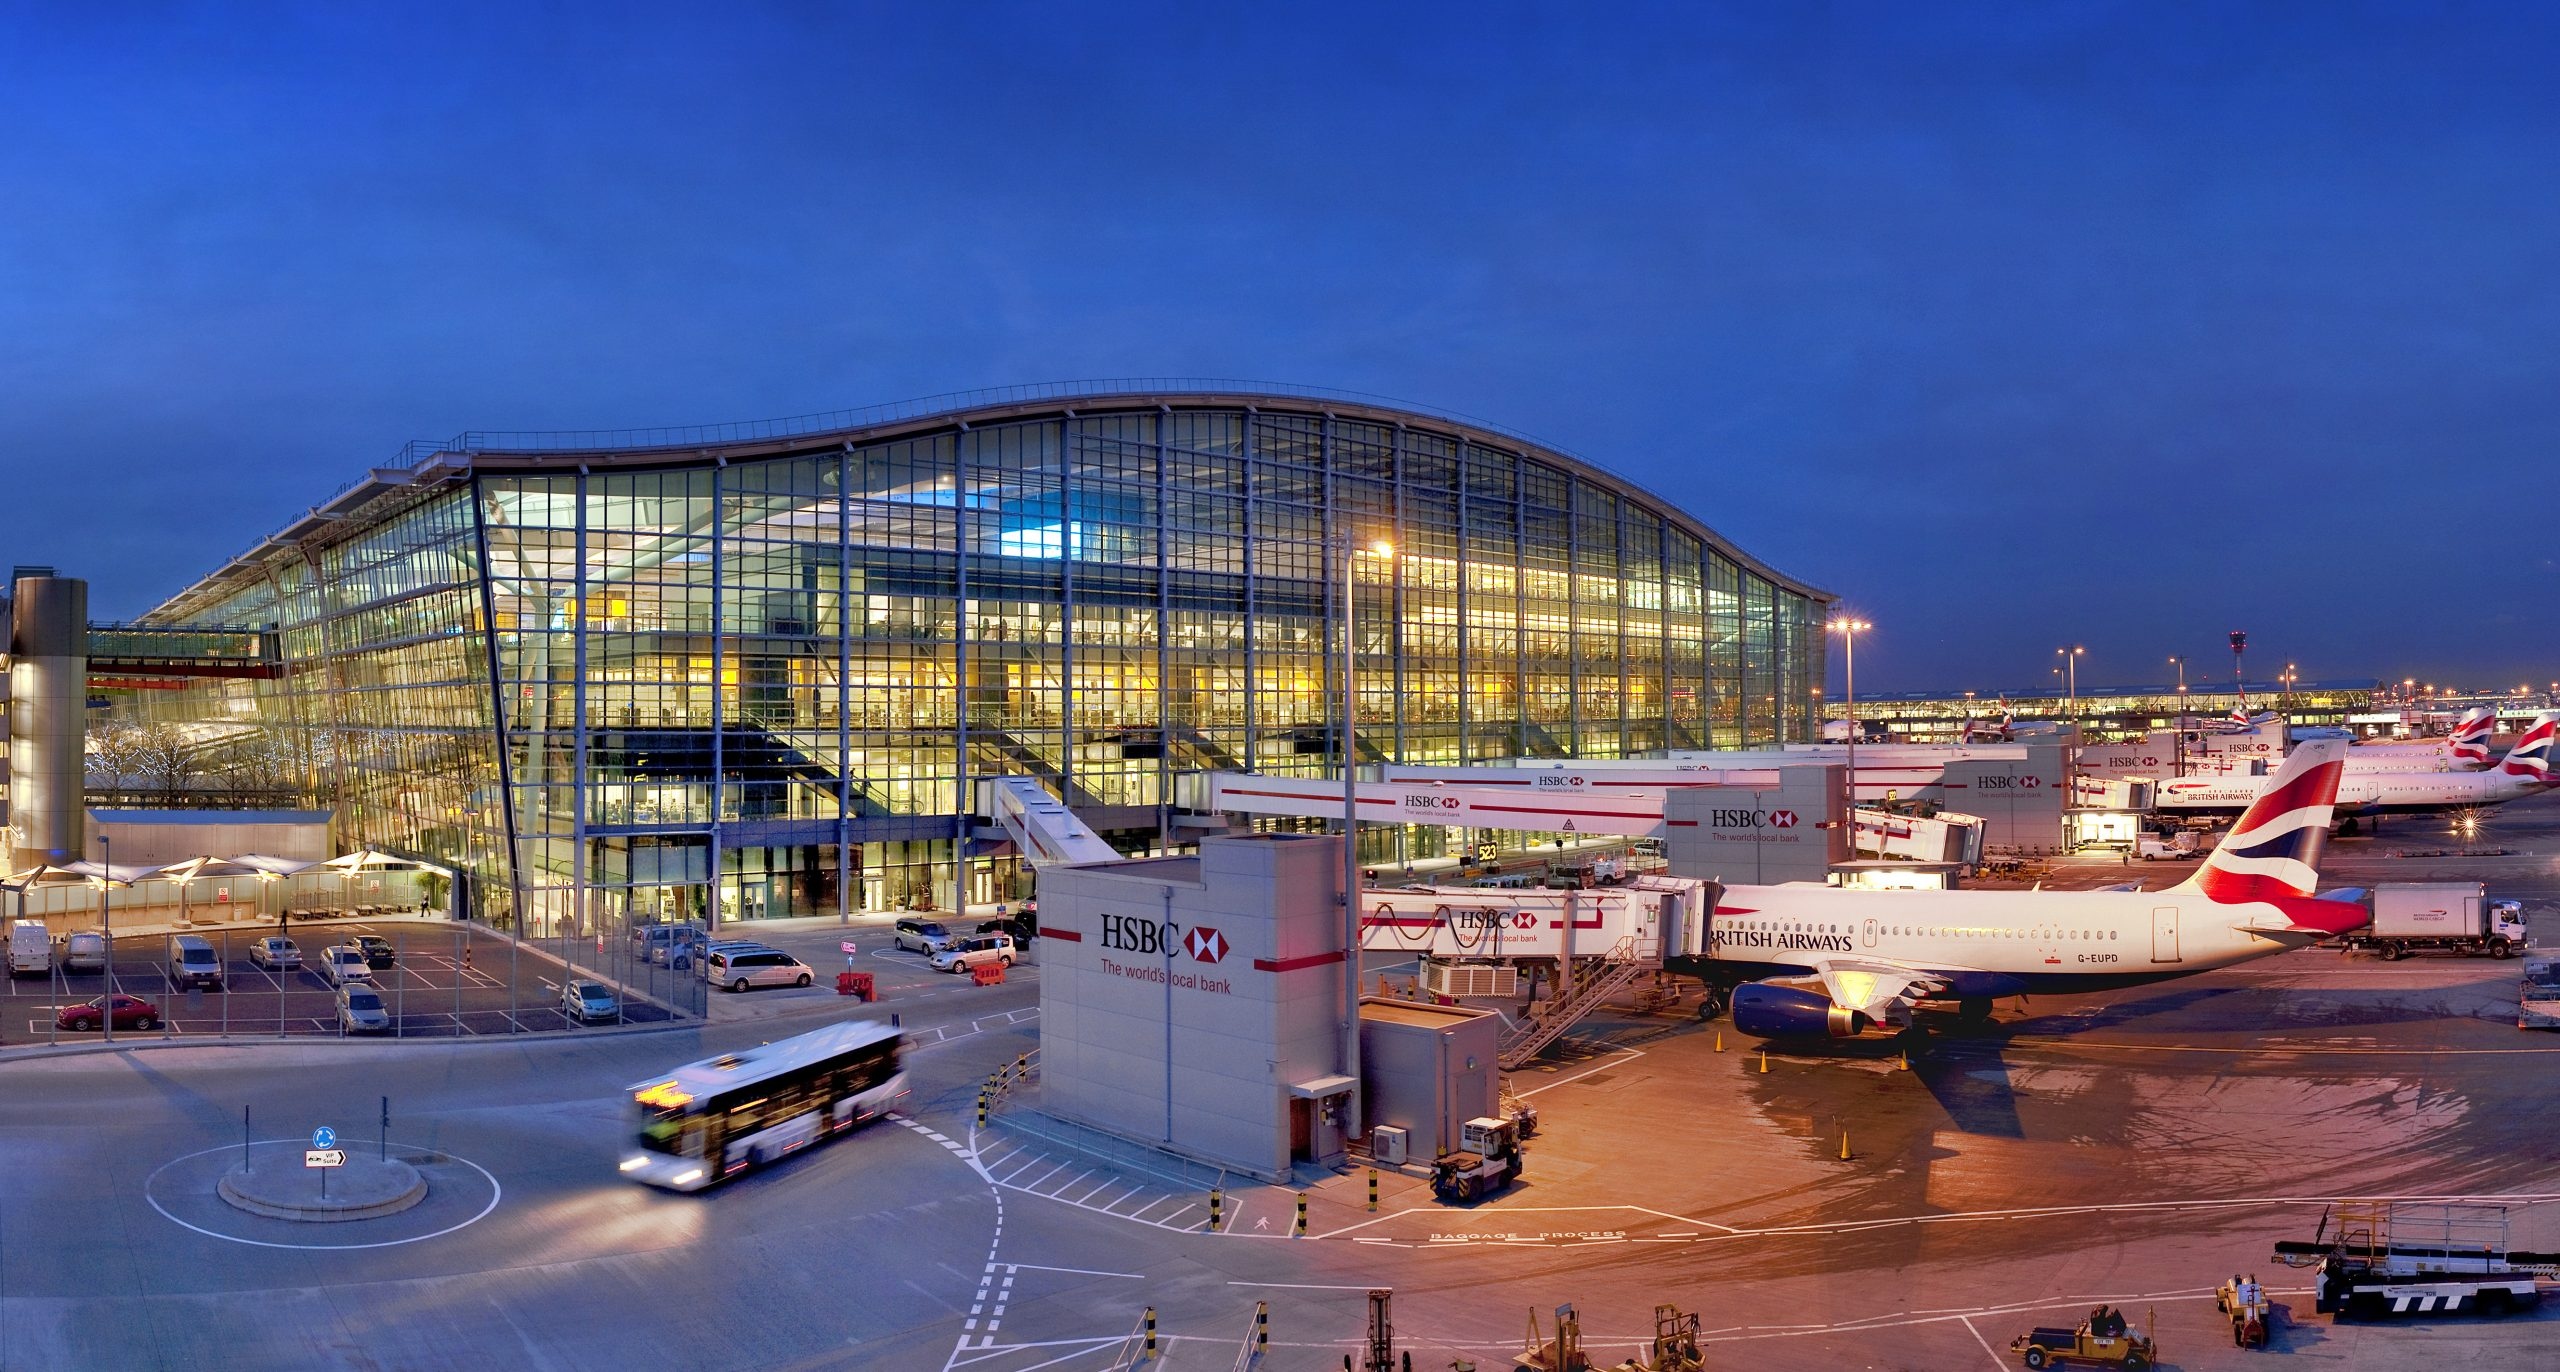 Heathrow Airport, Terminal 5A, main terminal building (southern elevation) and apron area at dusk (seen from Energy Centre roof), March 2010. Image Ref CHE06982d NW